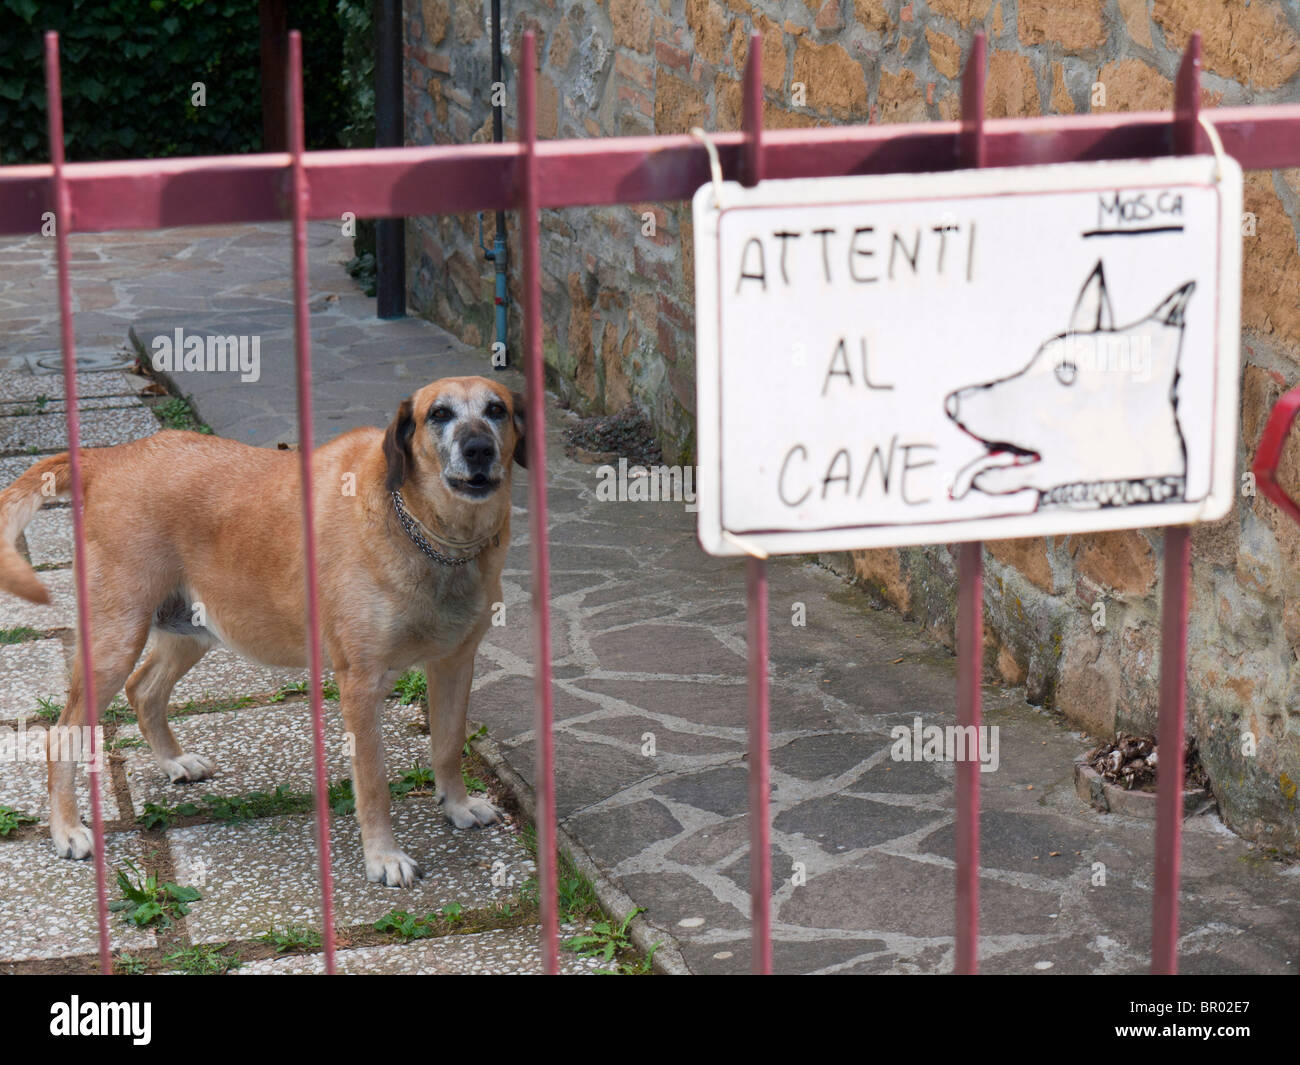 A warning sign on a gate, warning of a vicious dog in Italian language, saying beware of the dog. - Stock Image